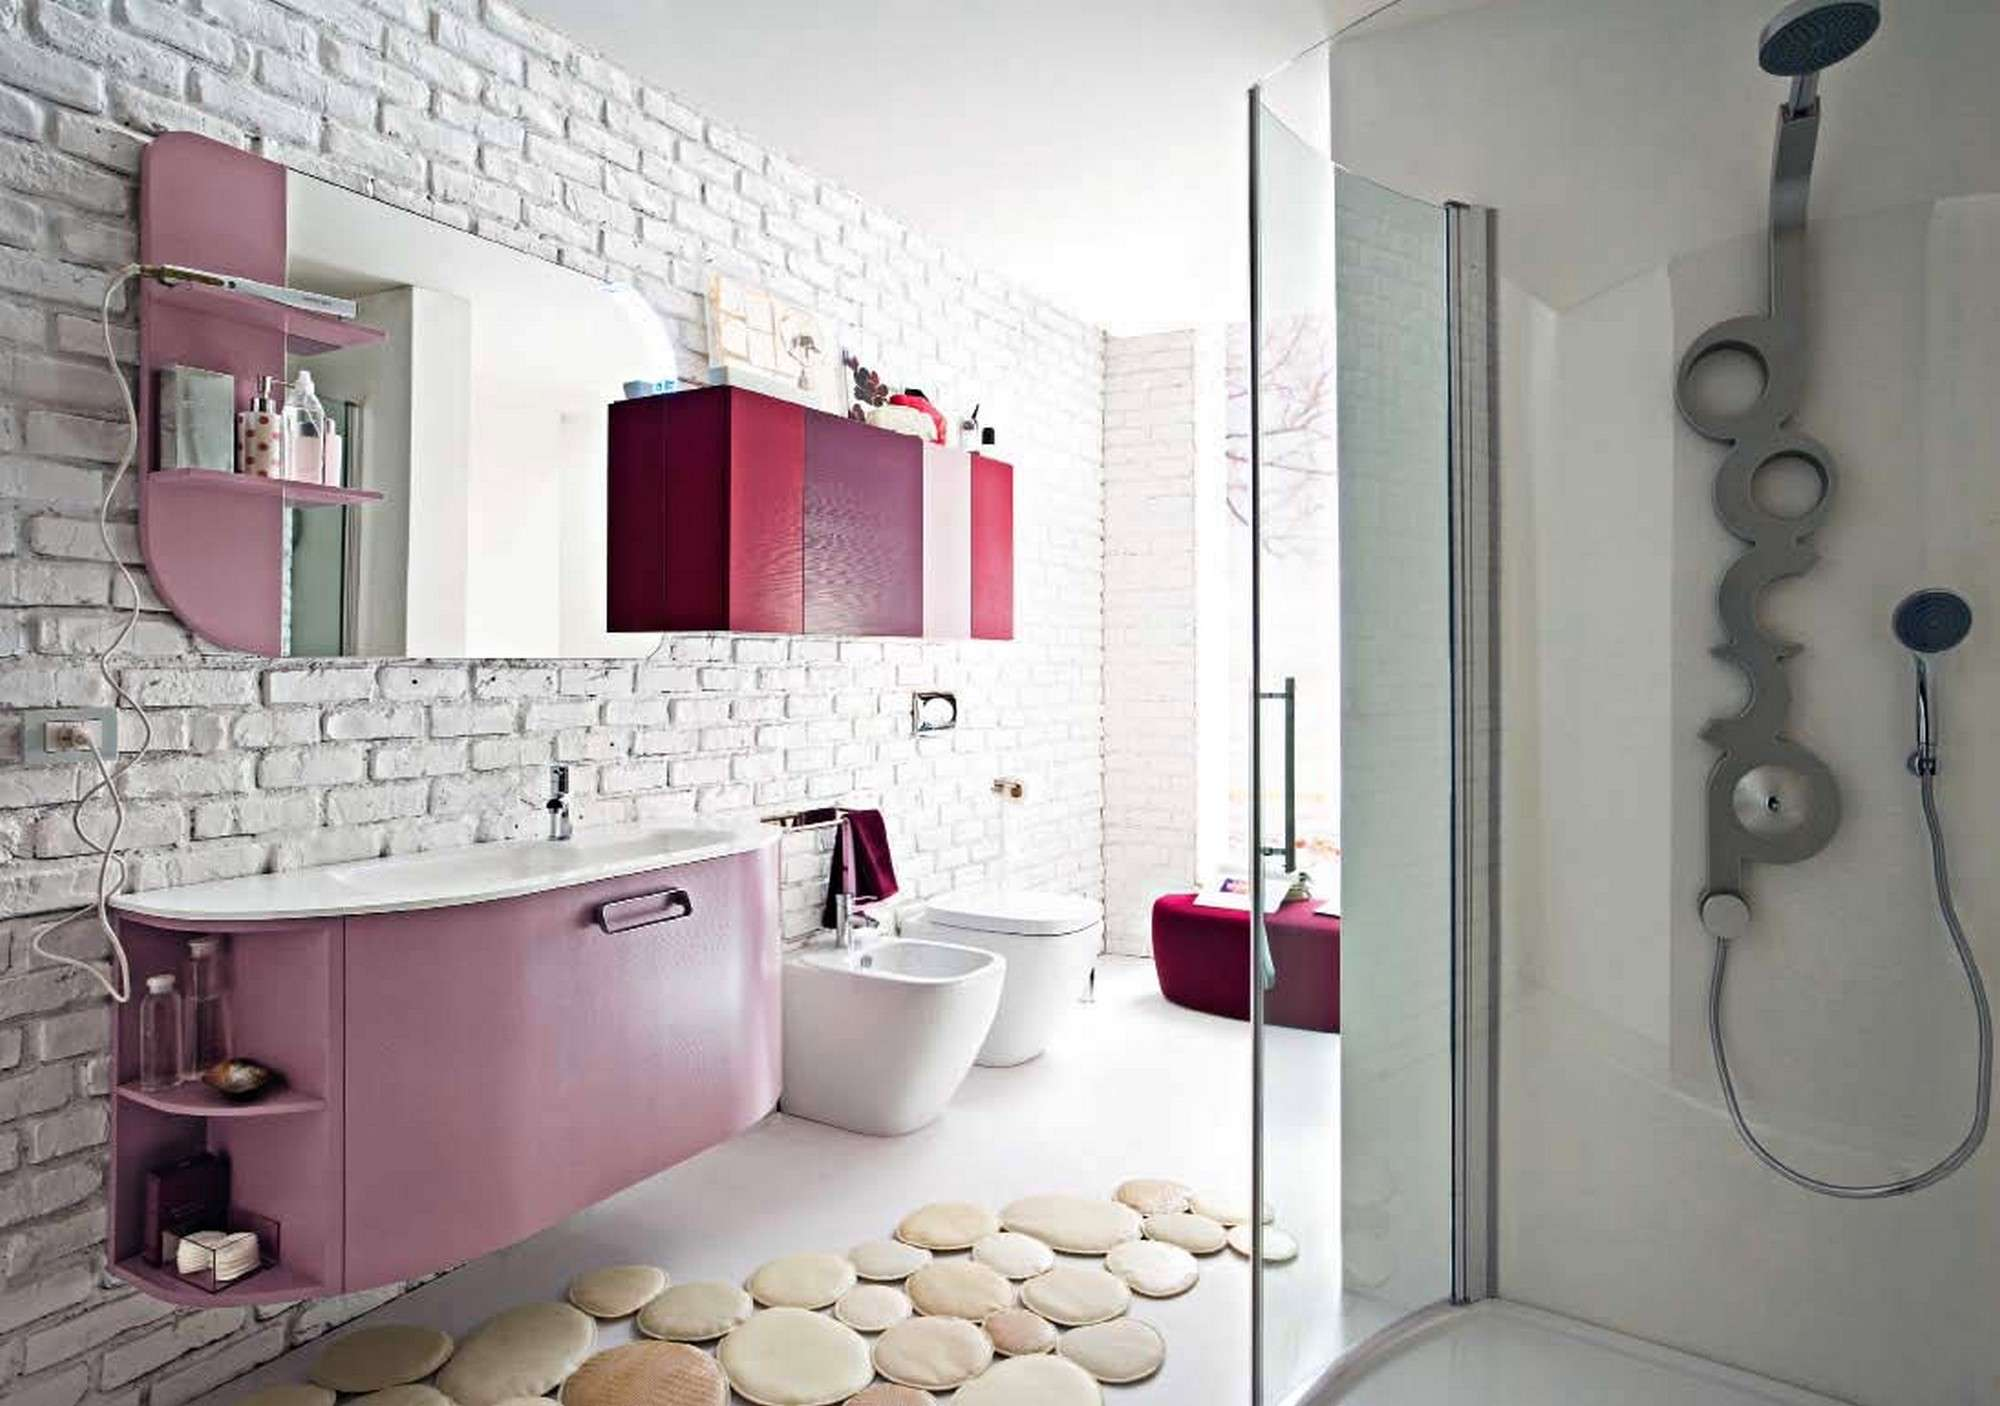 Ideas Using White Brick Wall Tiles Mirror Decorative